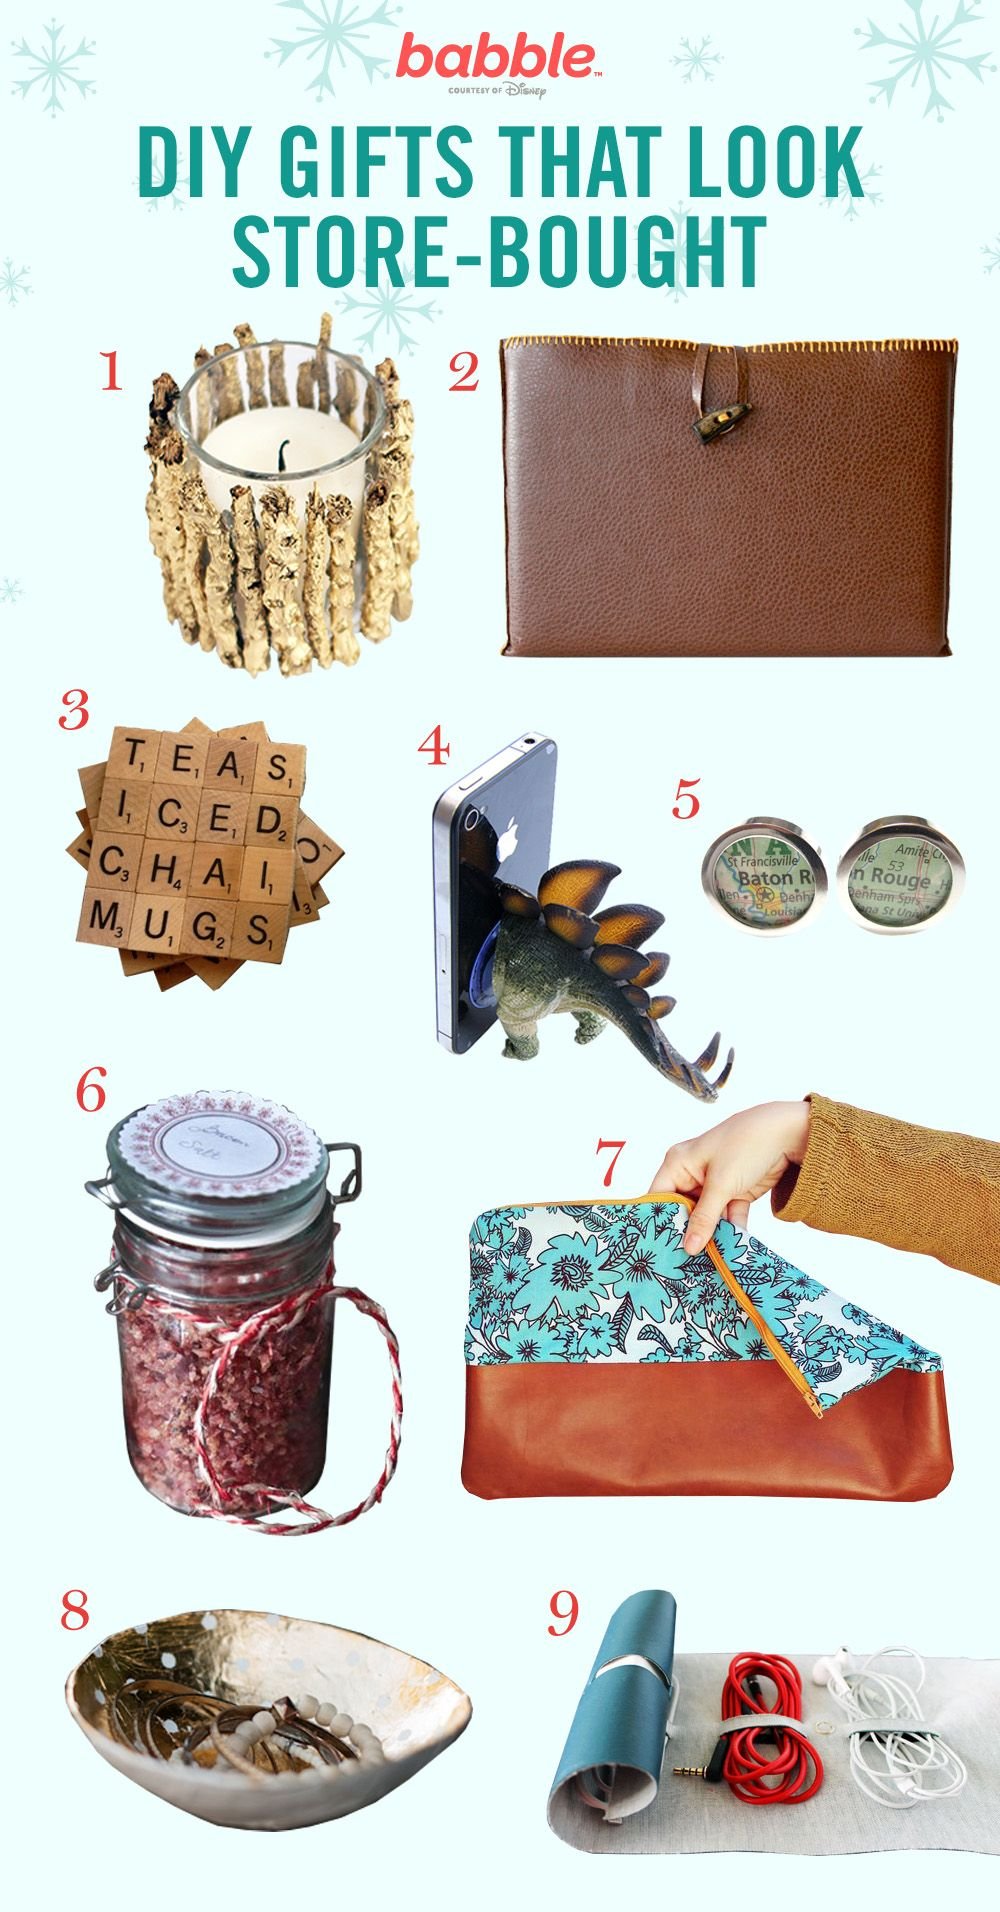 Easy Diy Gifts Diy Gifts And Easy Diy On Pinterest: 9 DIY Gifts That Look Store-Bought